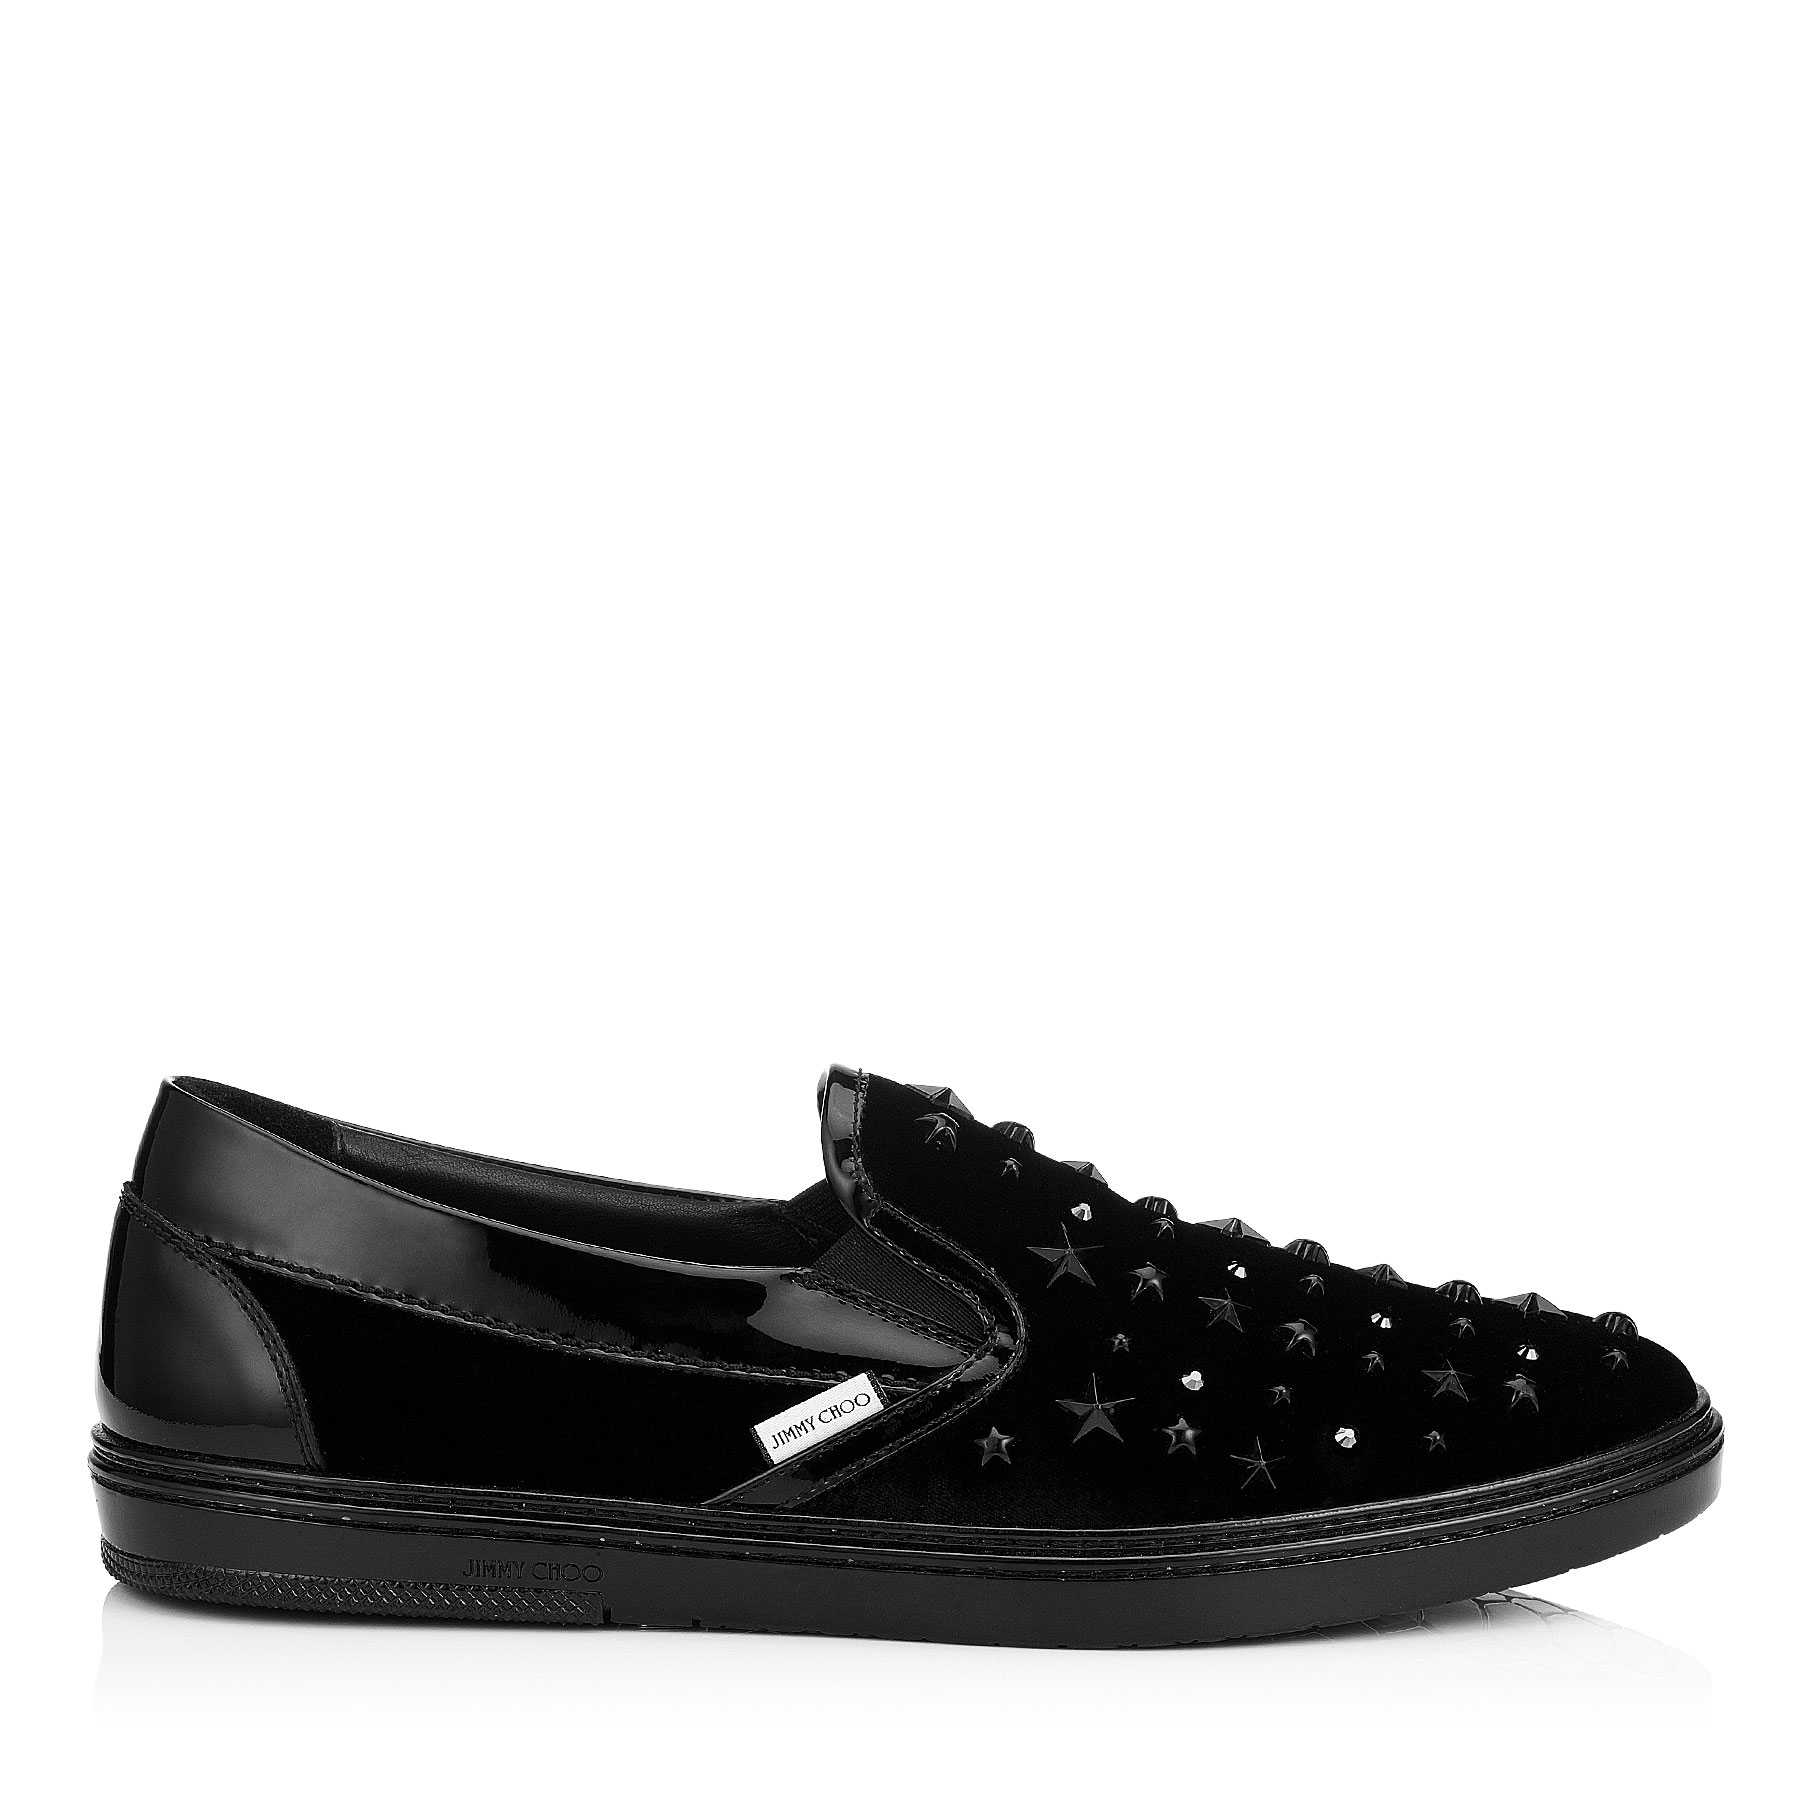 GROVE Black Velvet Slip On Trainers with Black Crystals and Stars